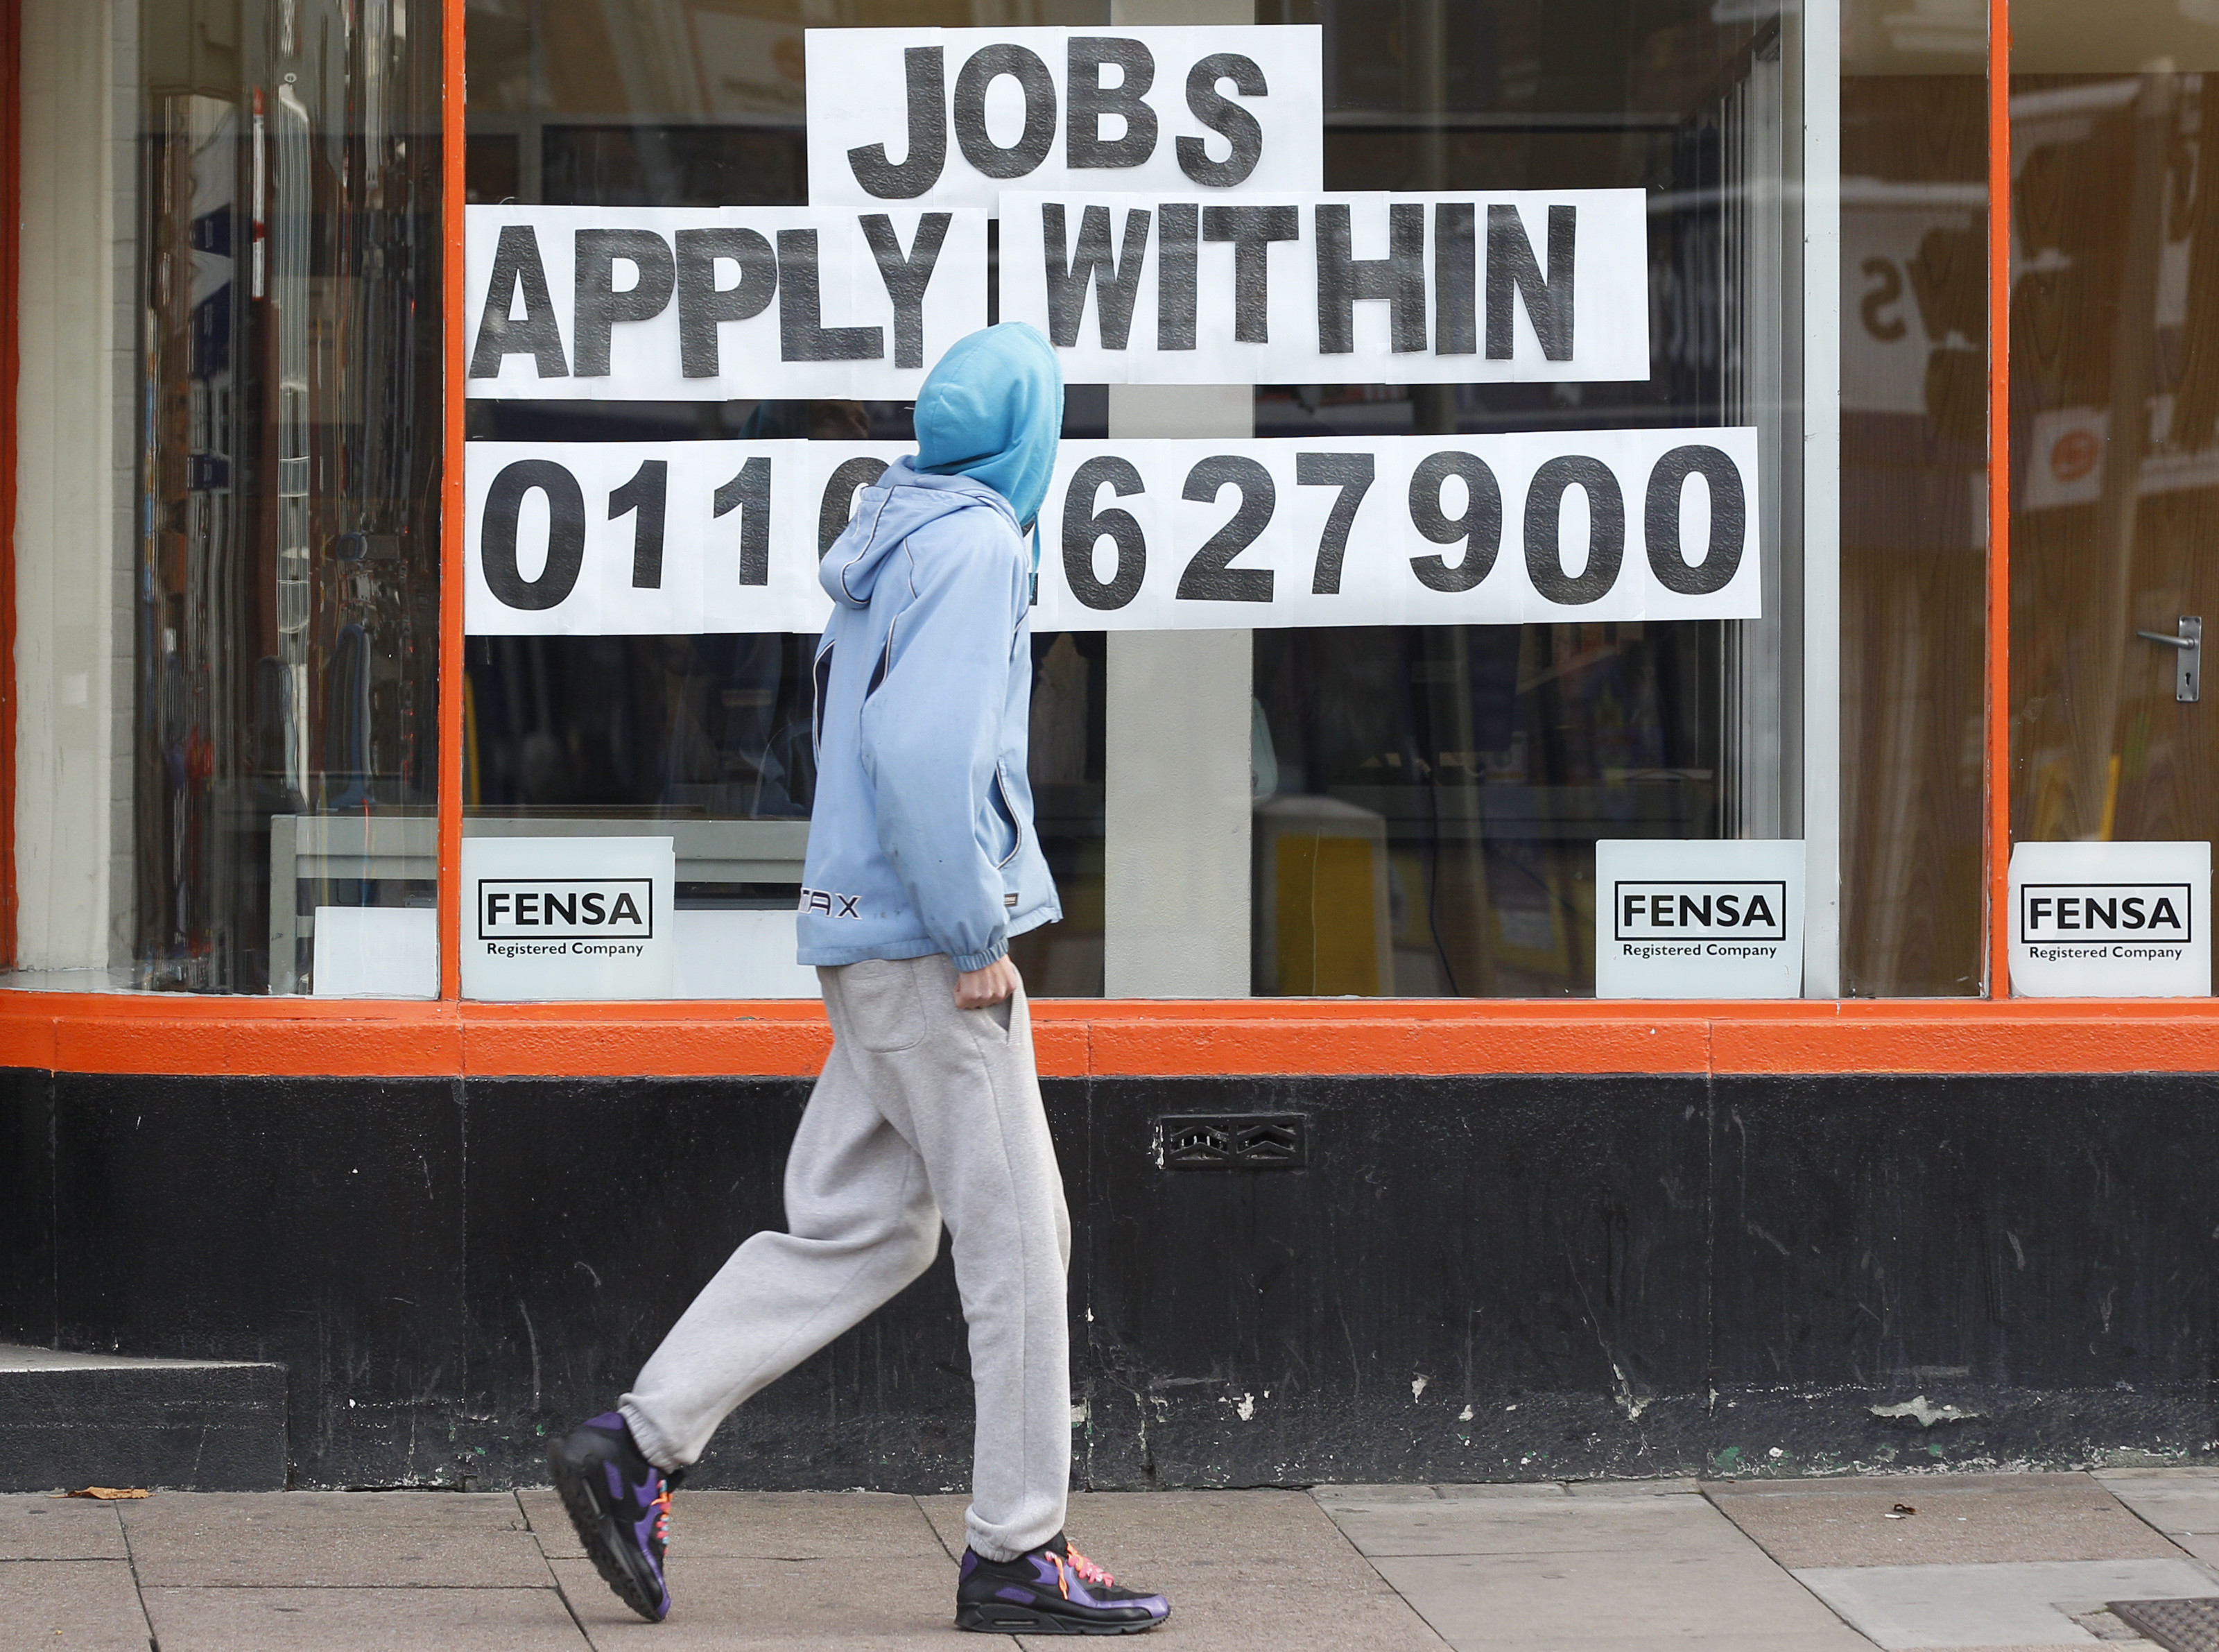 A man walks past a shop advertising job vacancies in Leicester, central England November 16, 2011. Unemployment in Britain hit its highest in 15 years and the number of young people out of work soared to a record of more than 1 million, adding to pressure on the government to do more to support a faltering economy.     REUTERS/Darren Staples (BRITAIN - Tags: BUSINESS POLITICS EMPLOYMENT) - LM1E7BG10KS01